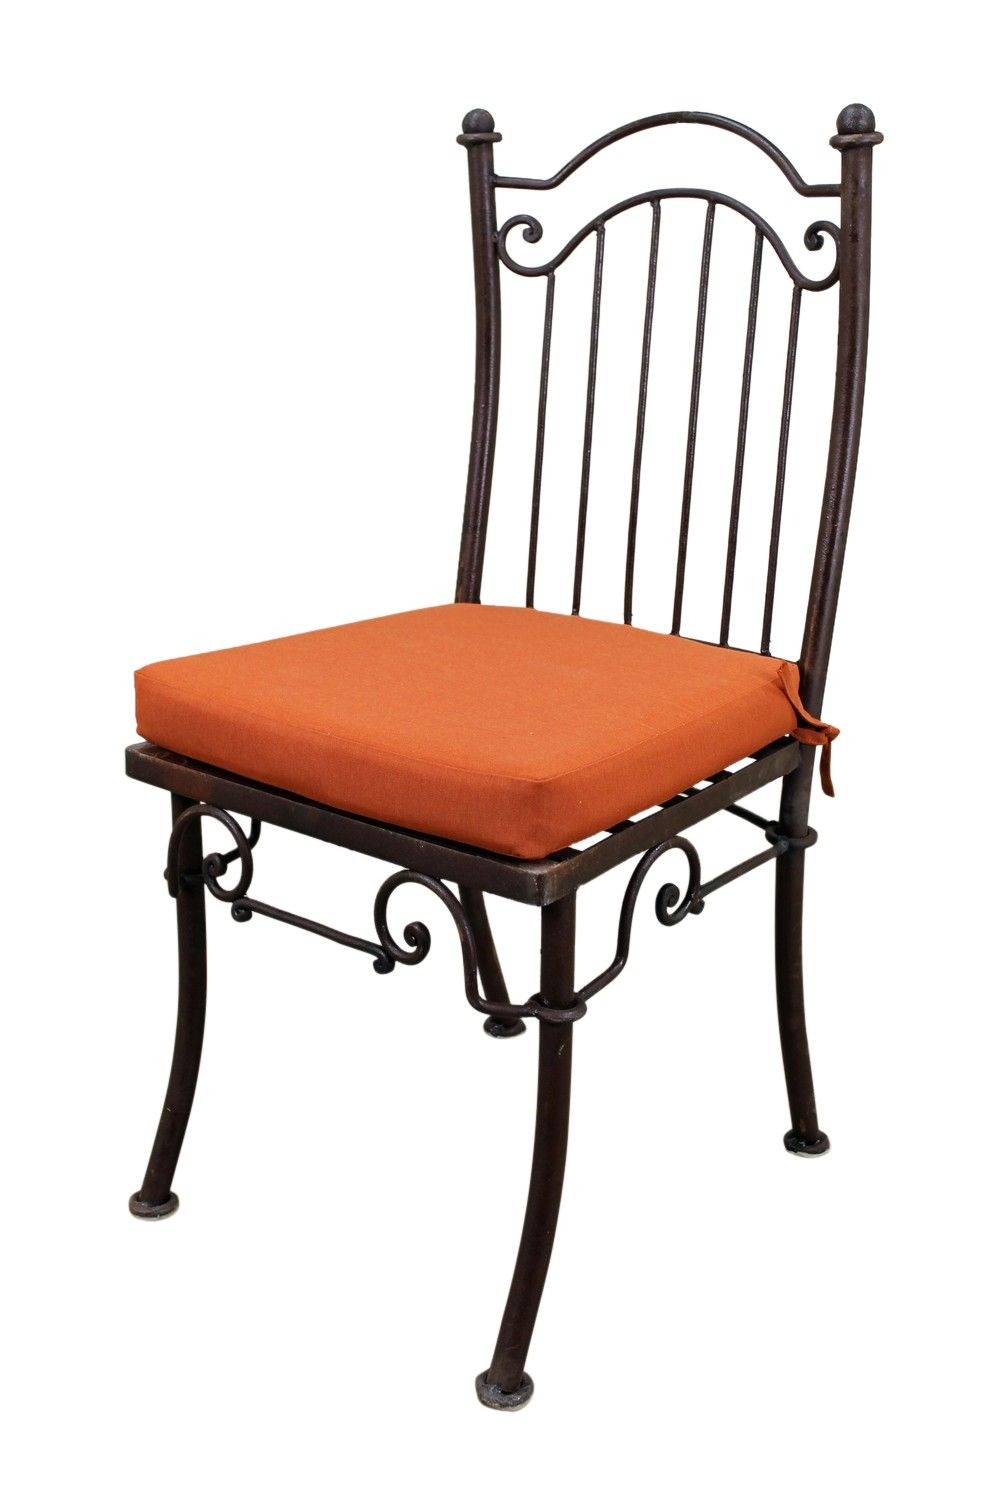 Iron dining chair with cushion cushions